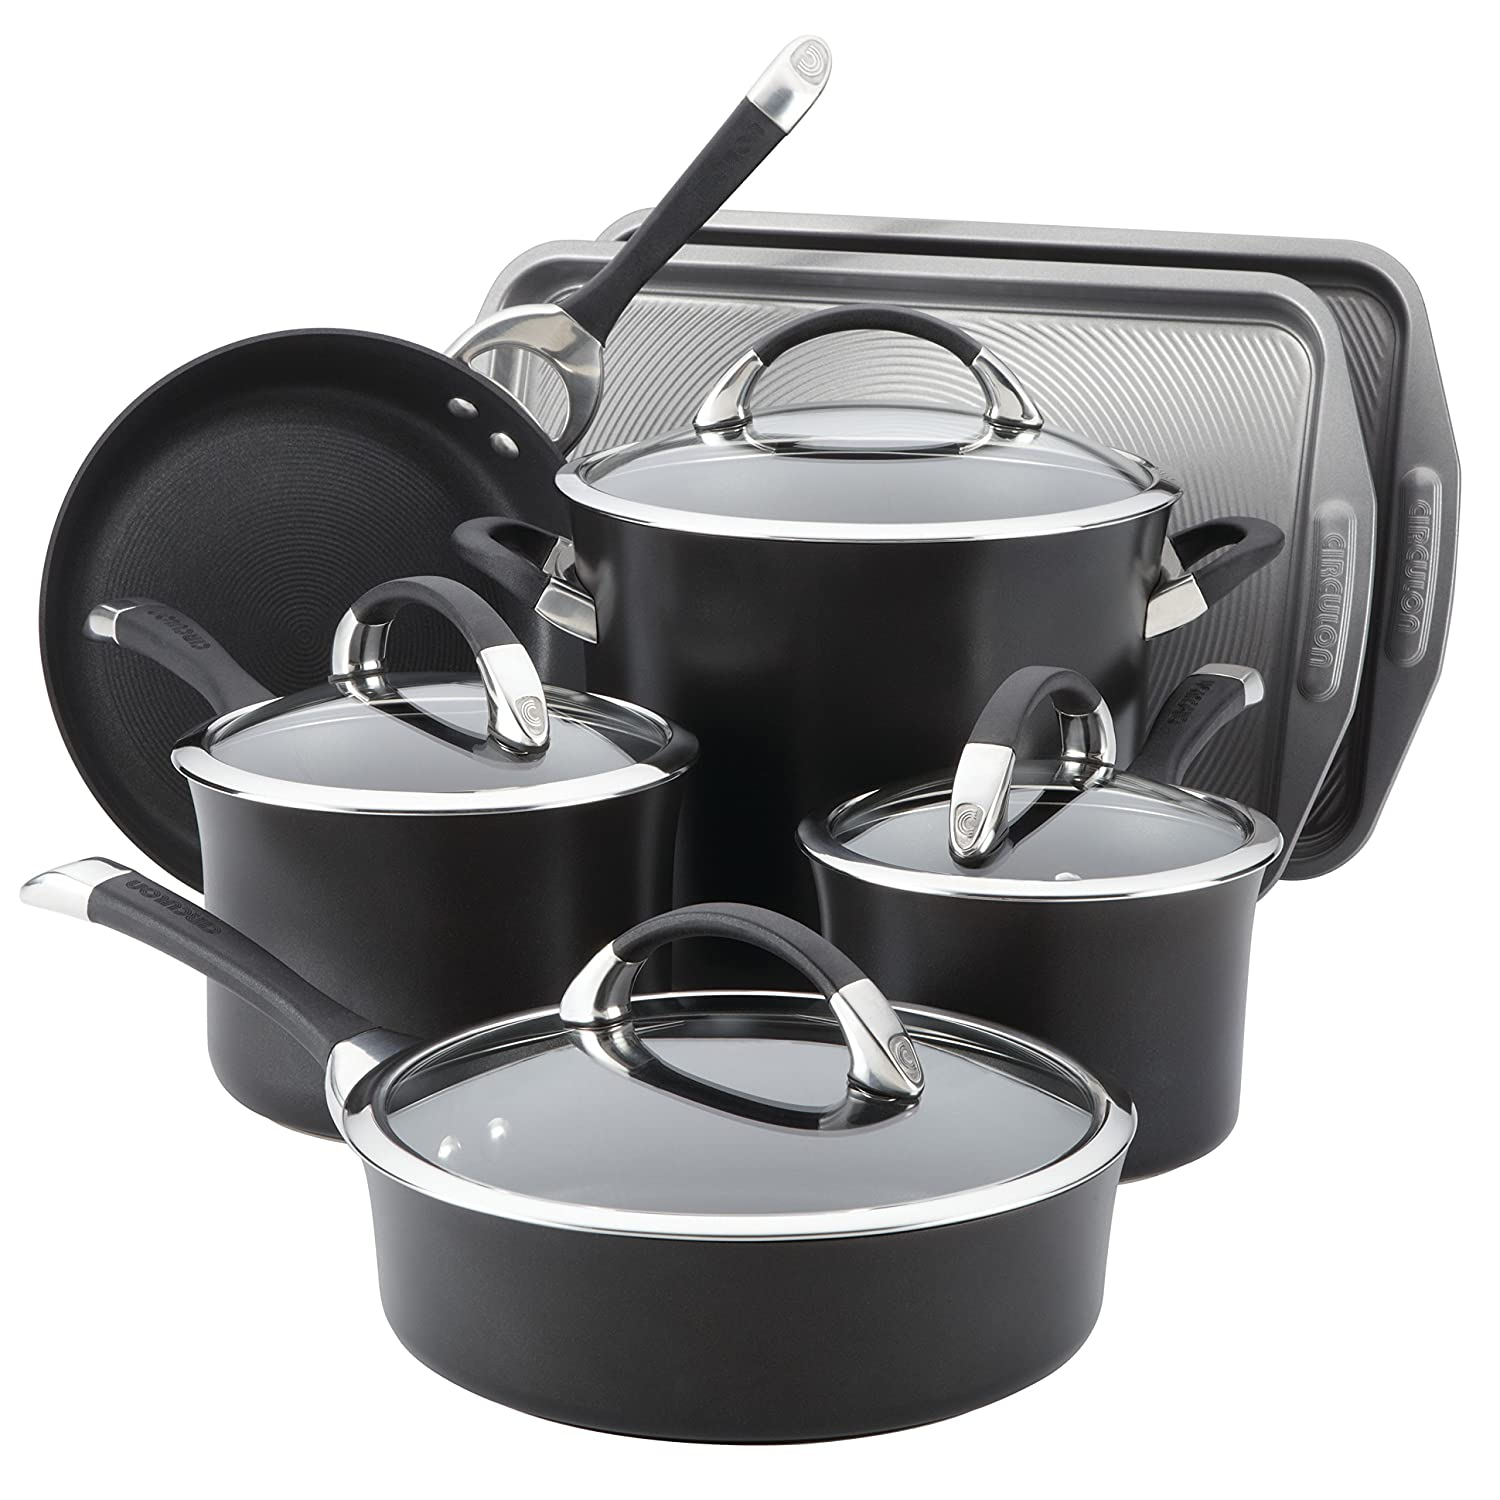 Circulon Symmetry Hard Anodized Nonstick 9-Piece Cookware Set plus 2-Piece Bakeware Set, Black